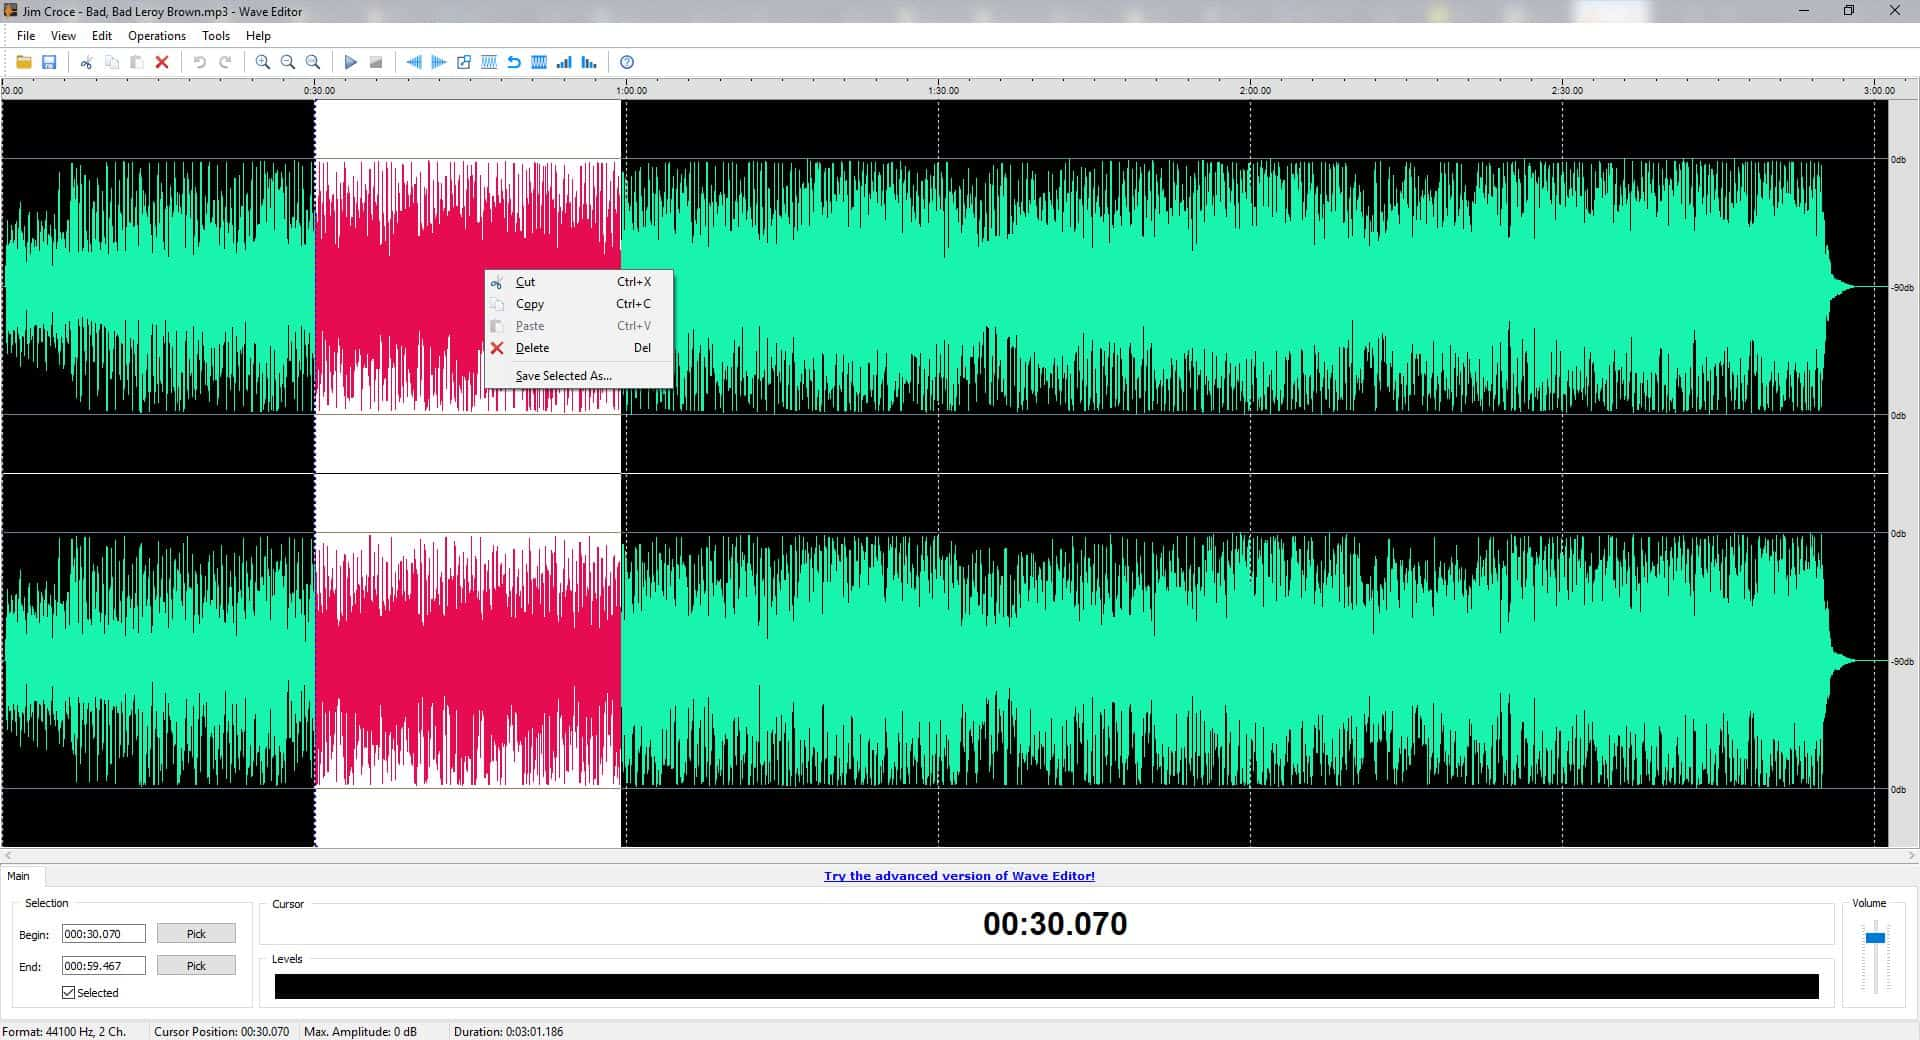 Wave Editor is a free and user-friendly audio editing program for Windows